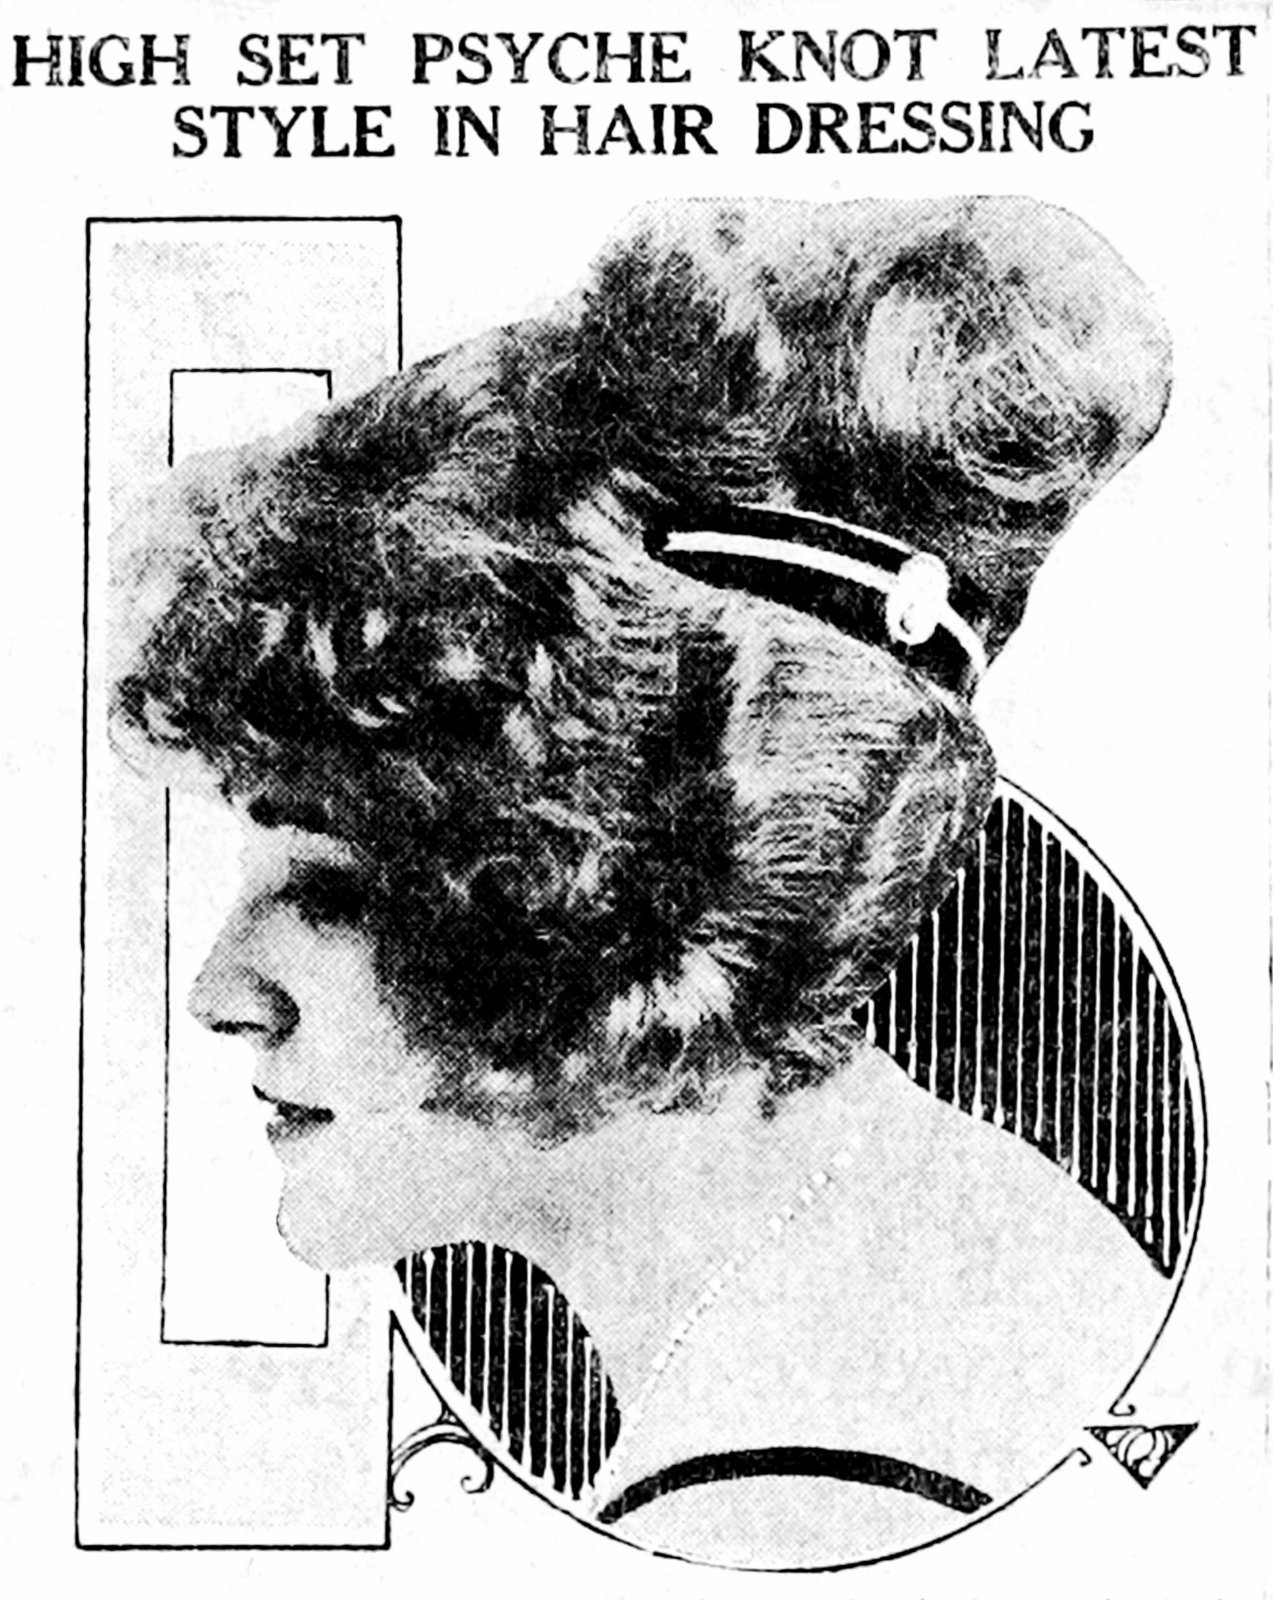 High-set Psyche knot is the latest style in hair dressings (1921)